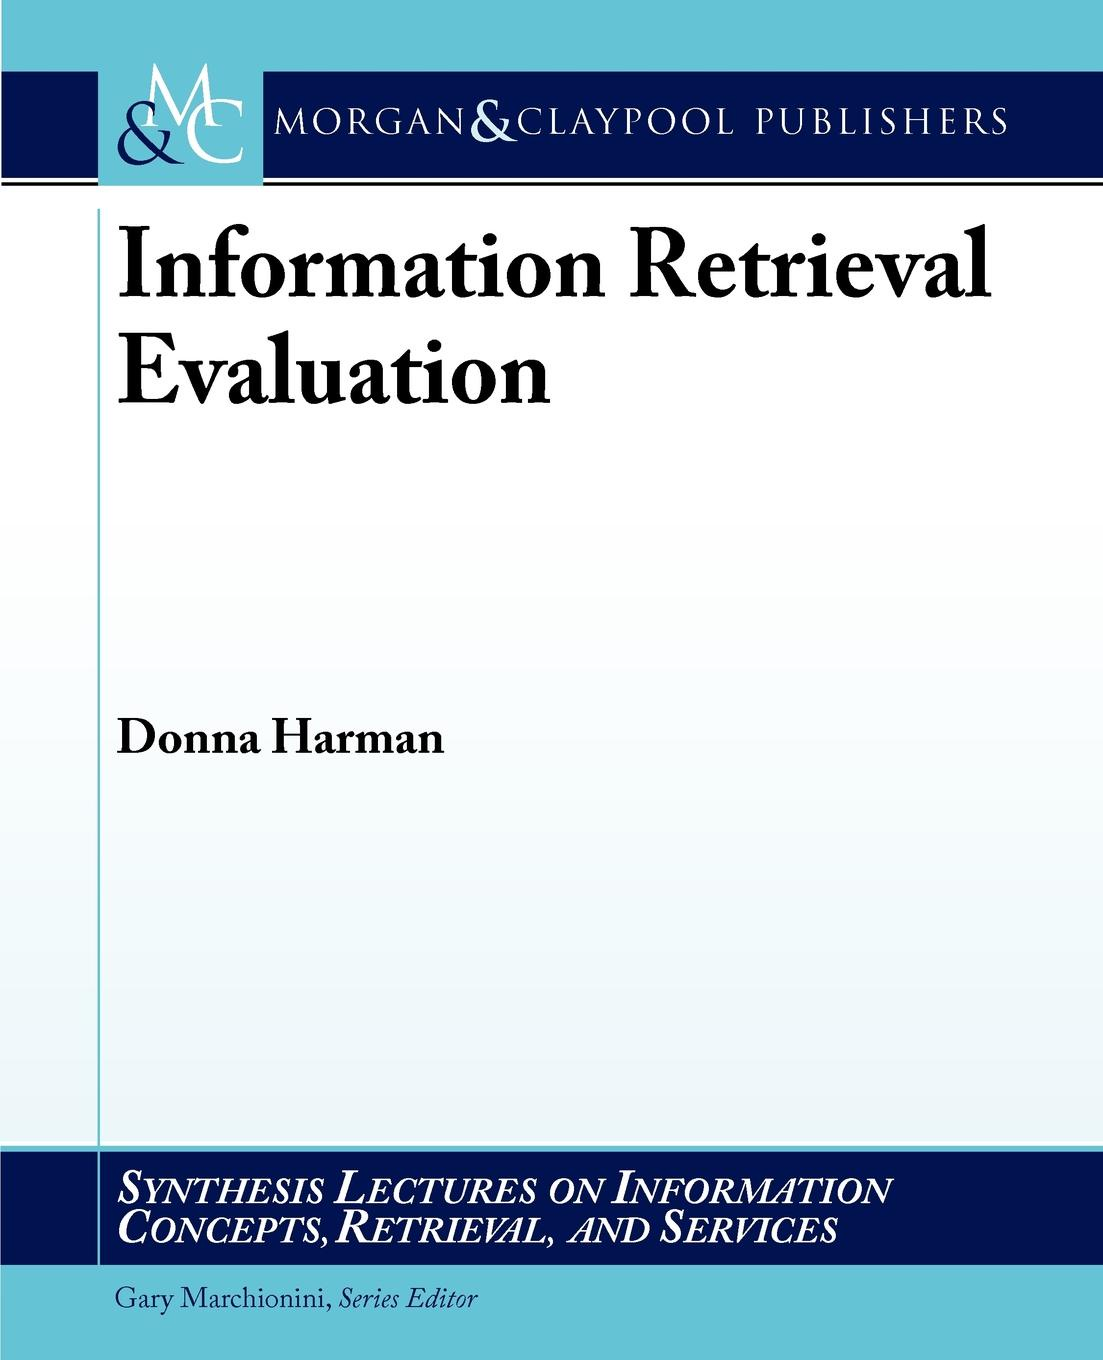 Donna Harman Information Retrieval Evaluation collaboration among data sources for information retrieval